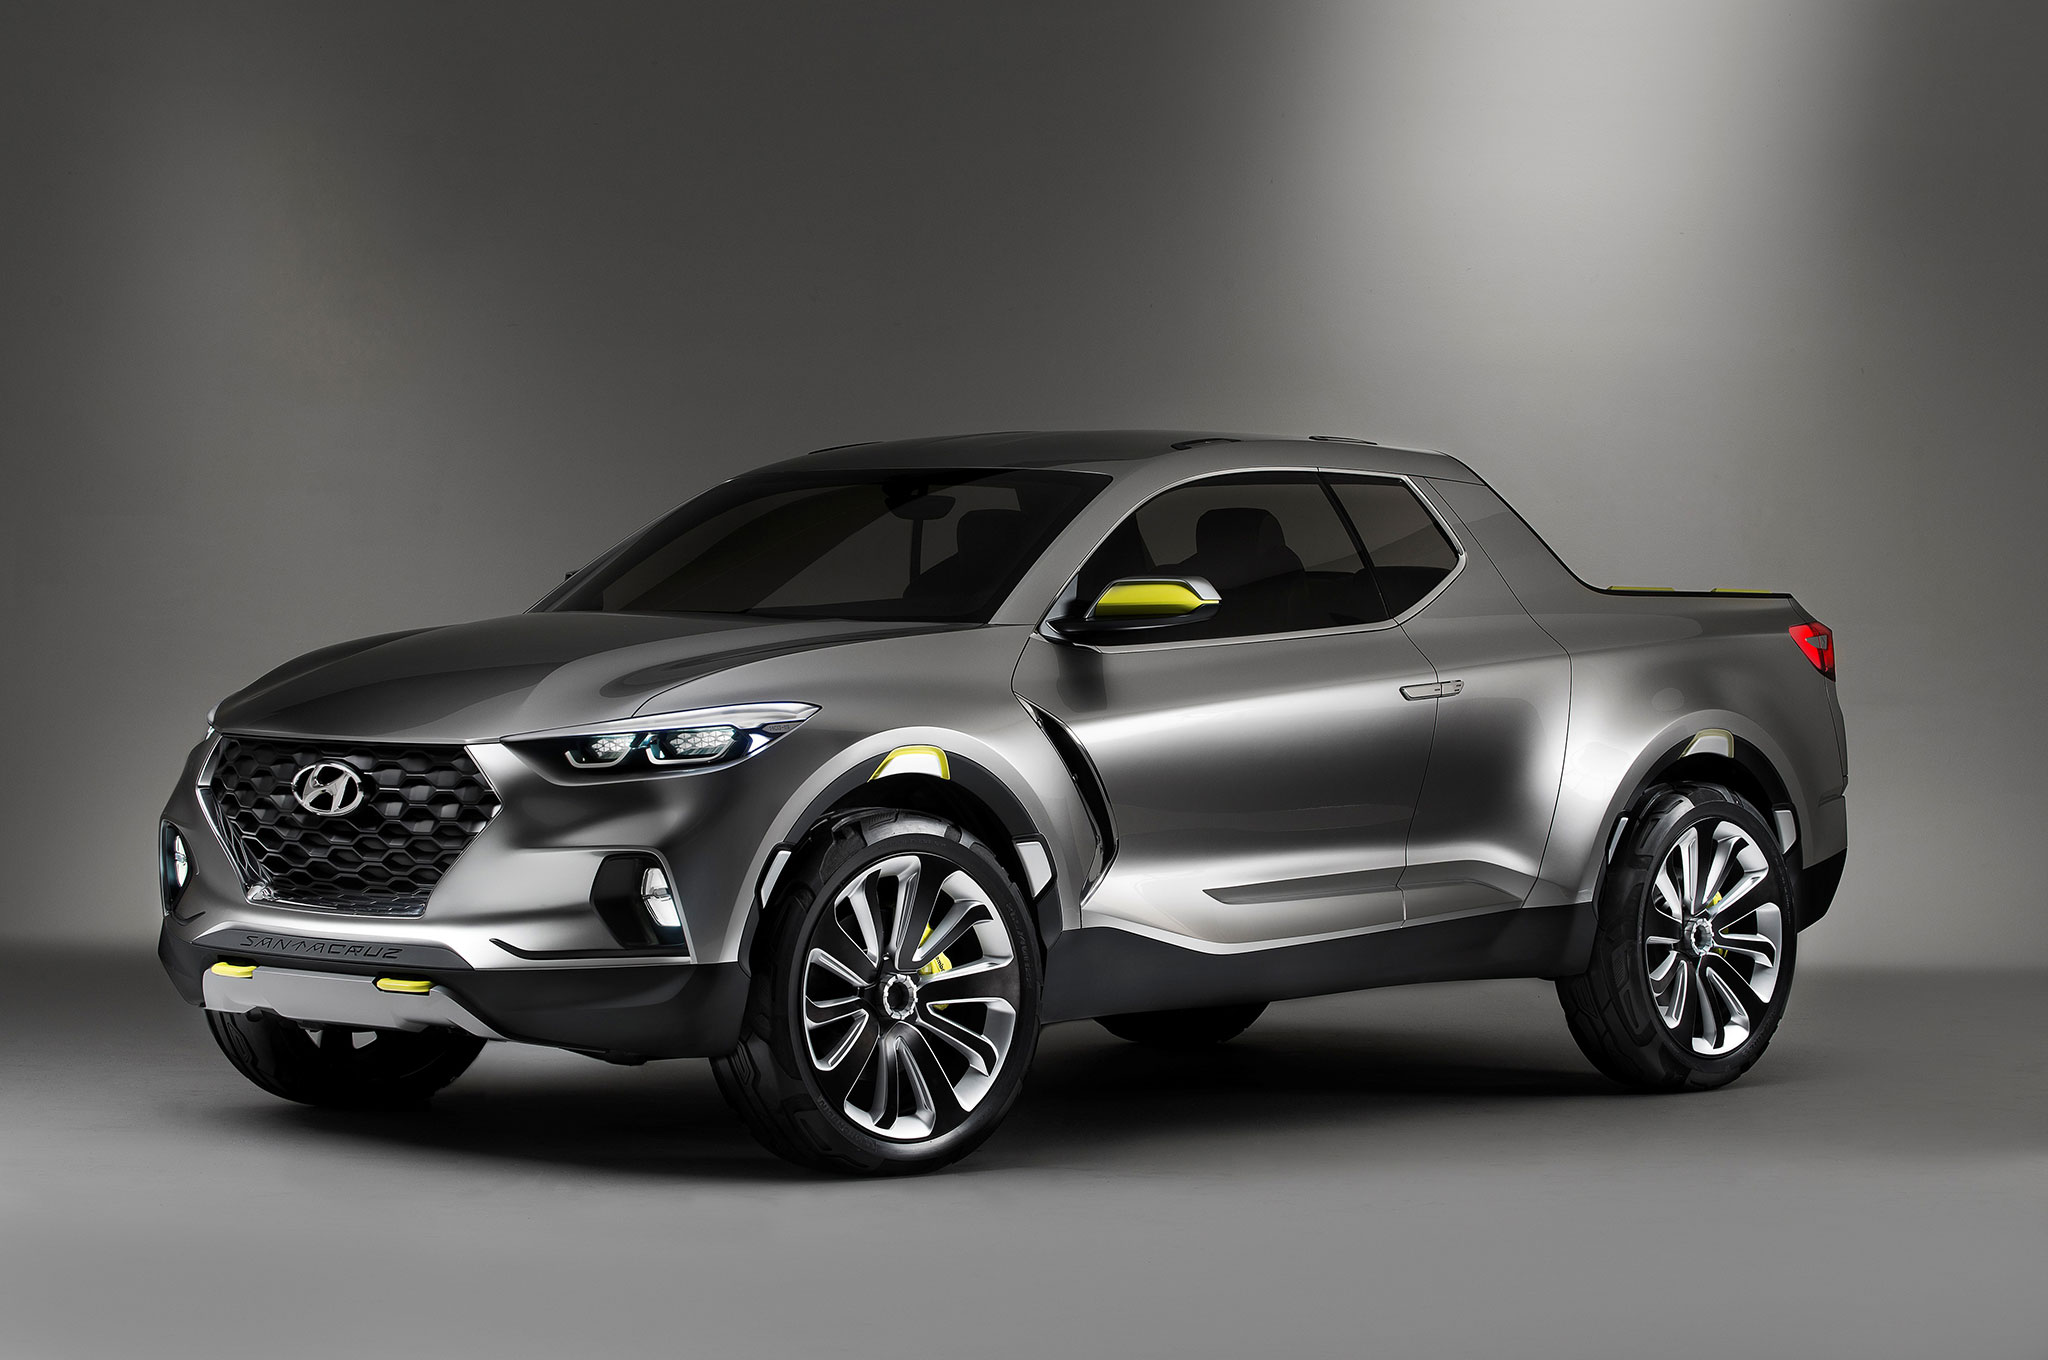 Hyundai Confirms Plans To Sell Pickup Truck In The U S Automobile